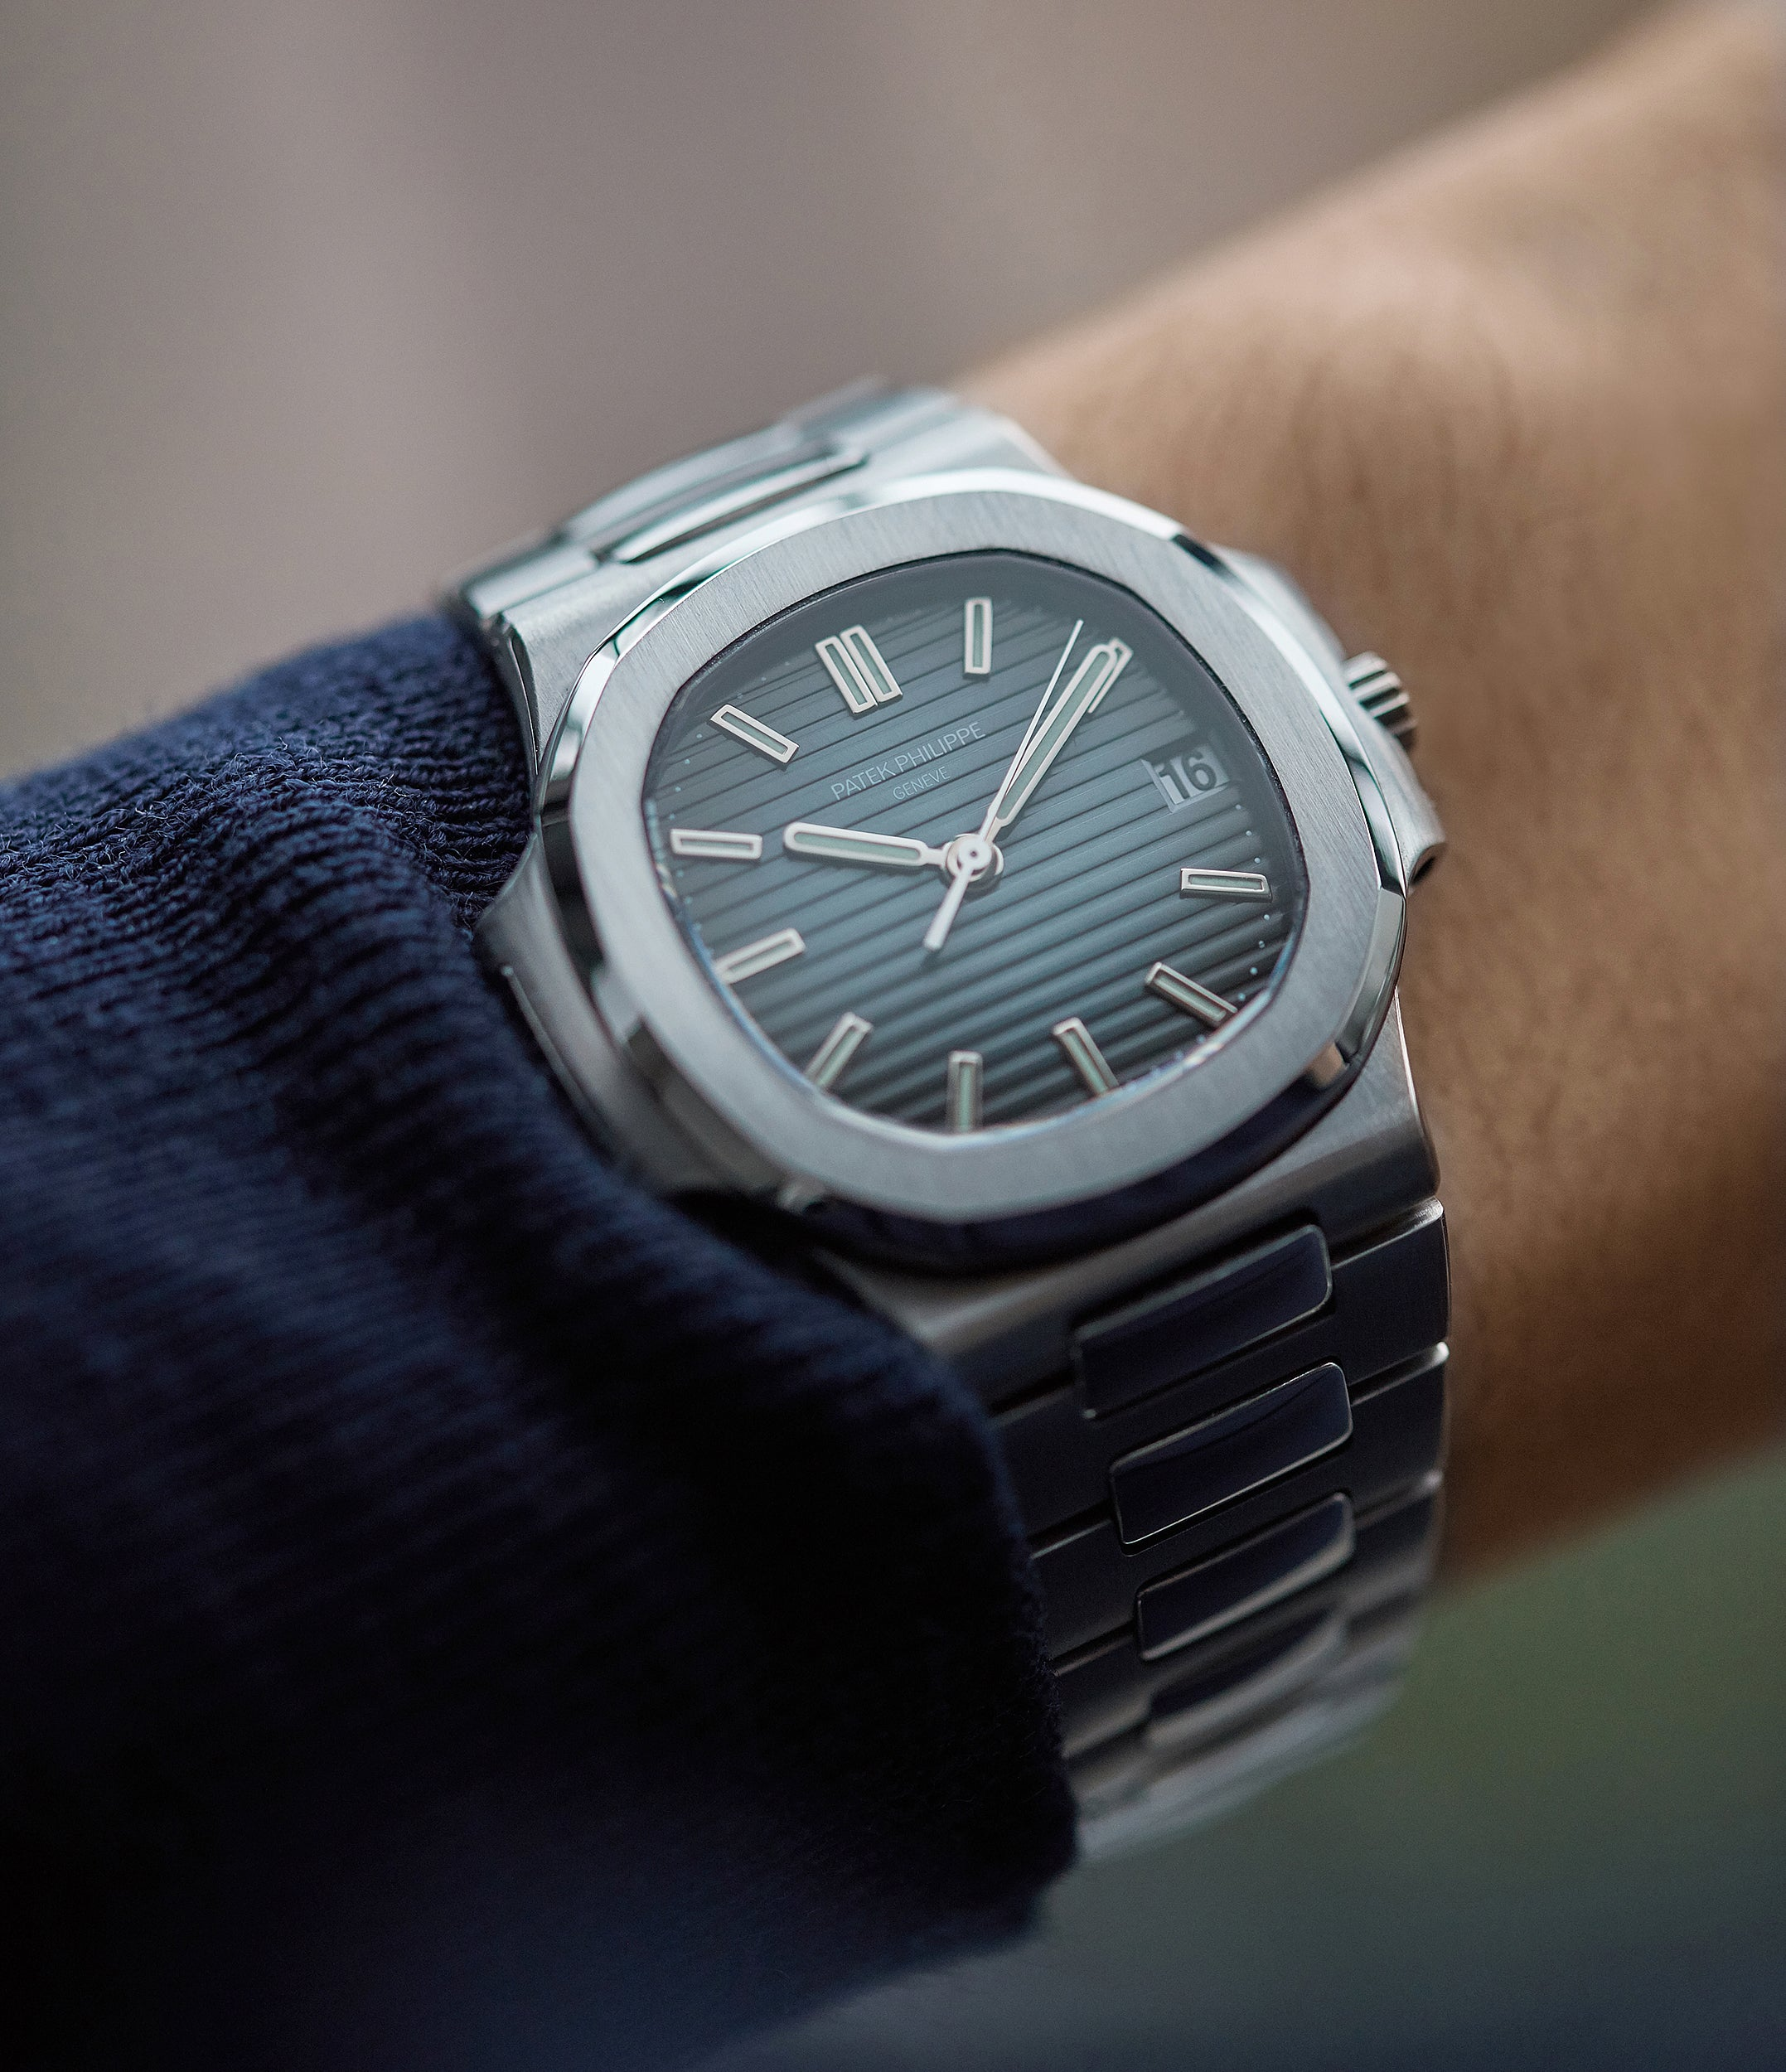 luxury sports watch Patek Philippe Nautilus 5800/1A-001 steel pre-owned watch for sale online at A Collected Man London UK specialist of rare watches